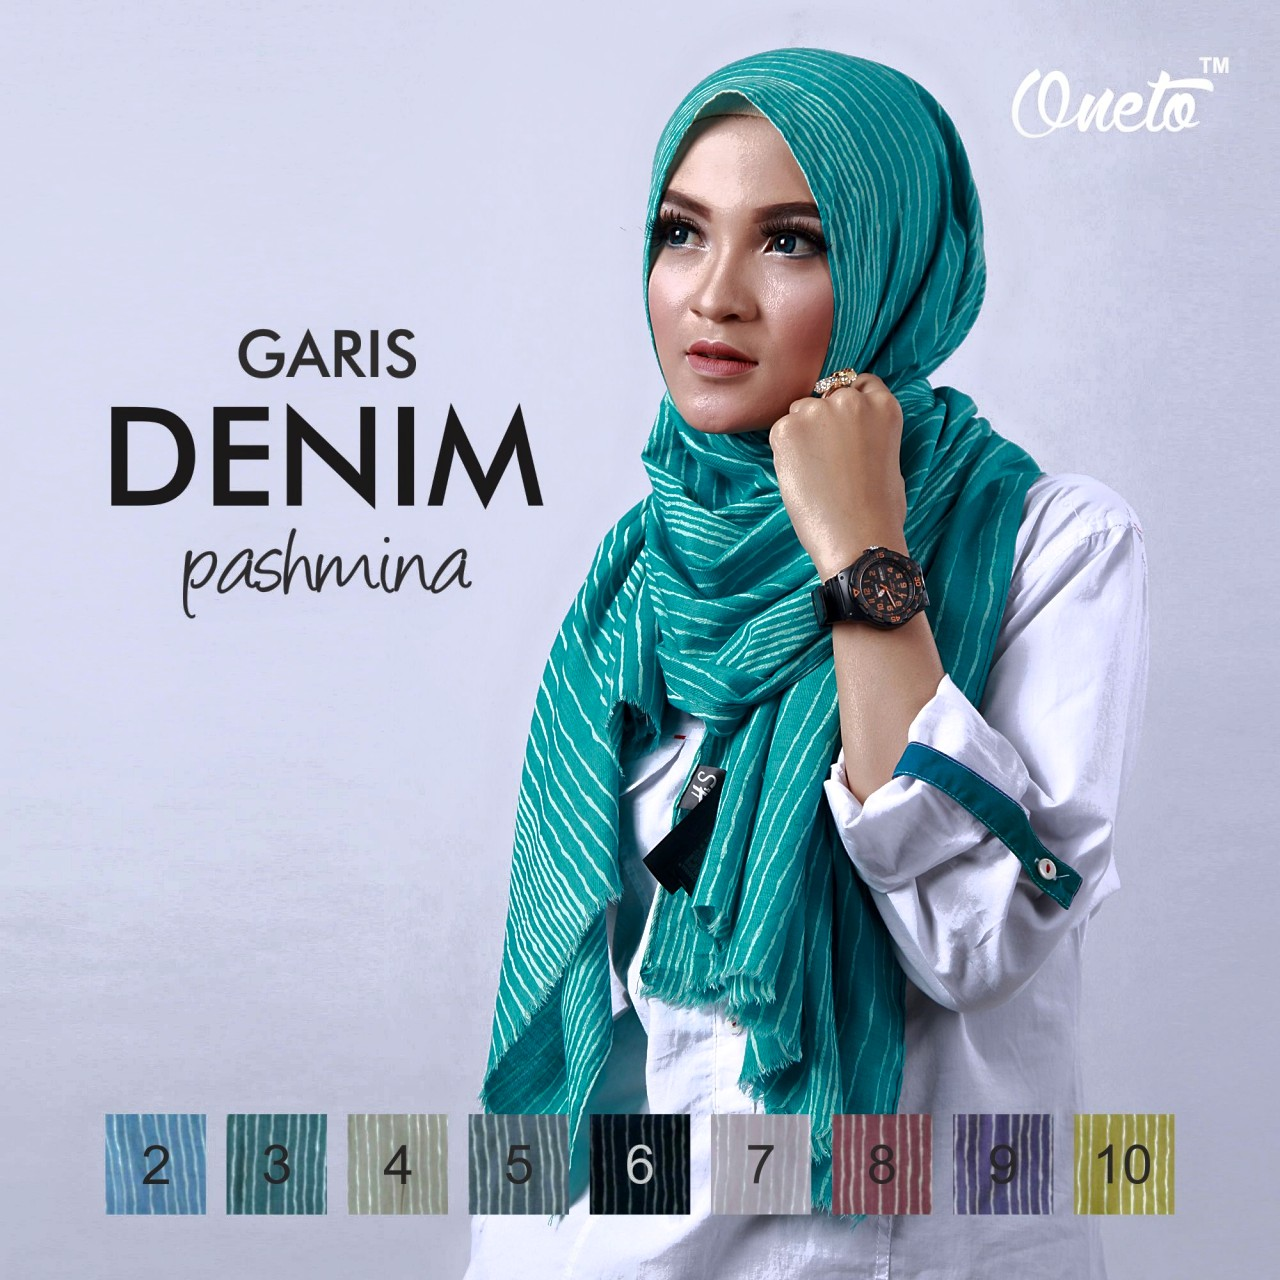 oneto garis denim pasmina